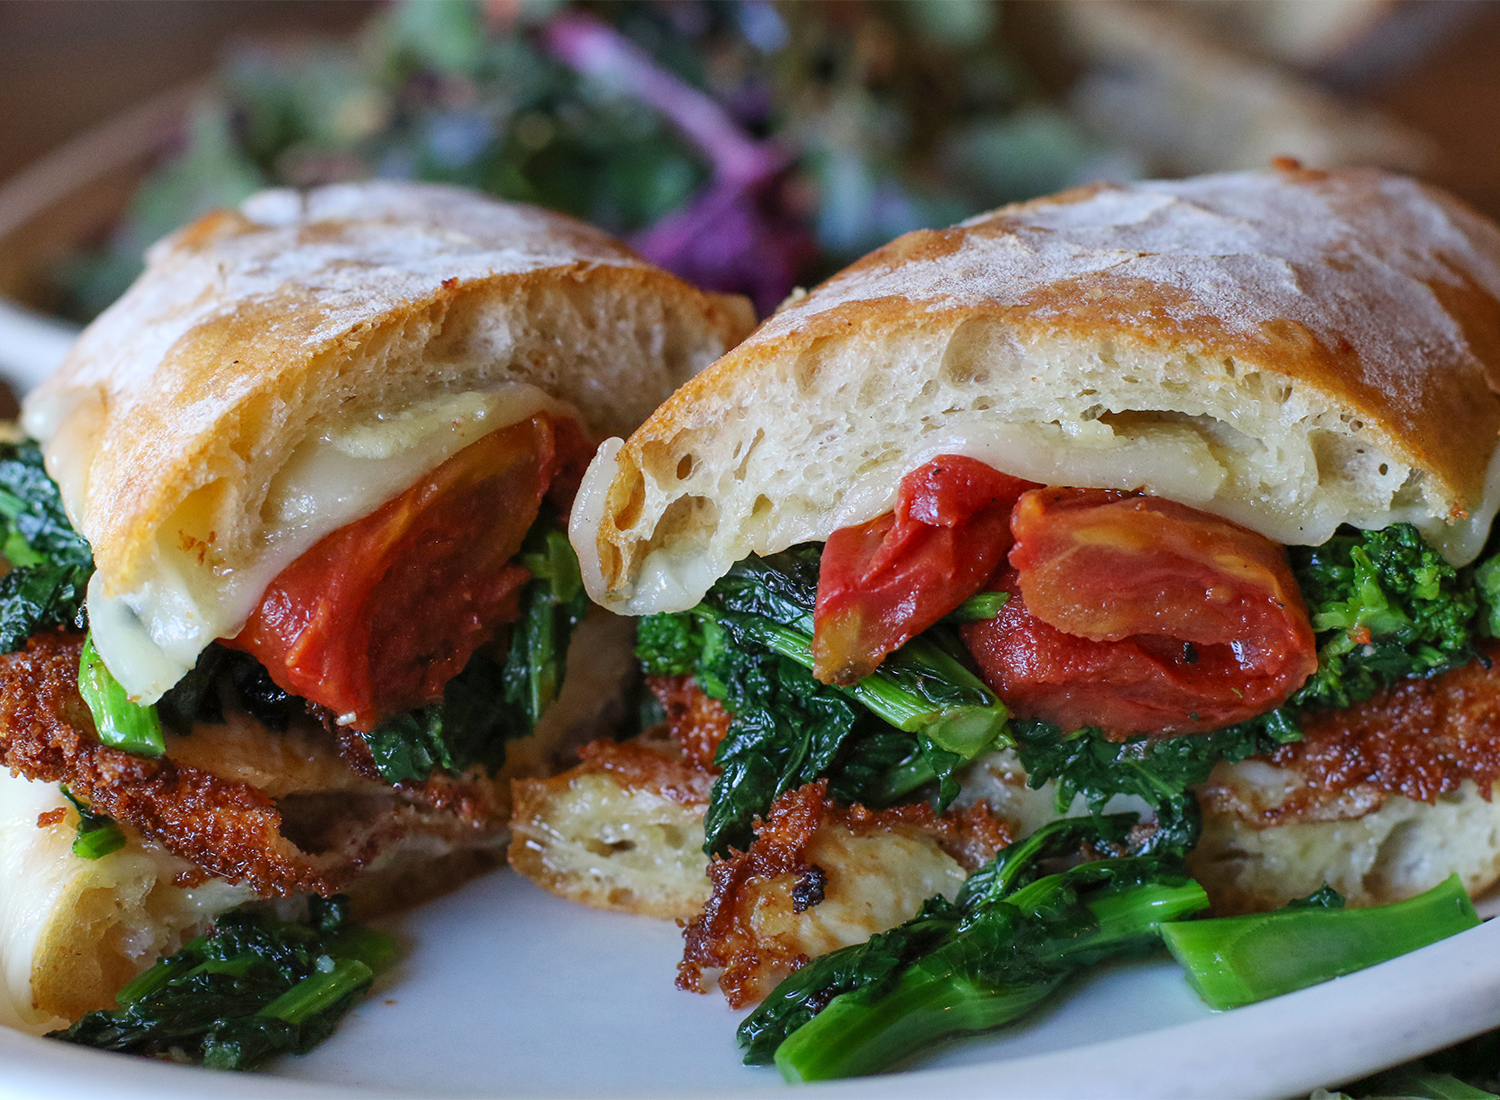 Philly sandwich with fried chicken breast, provolone, oven roasted tomatoes and broccoli rable. Heather Irwin/PD